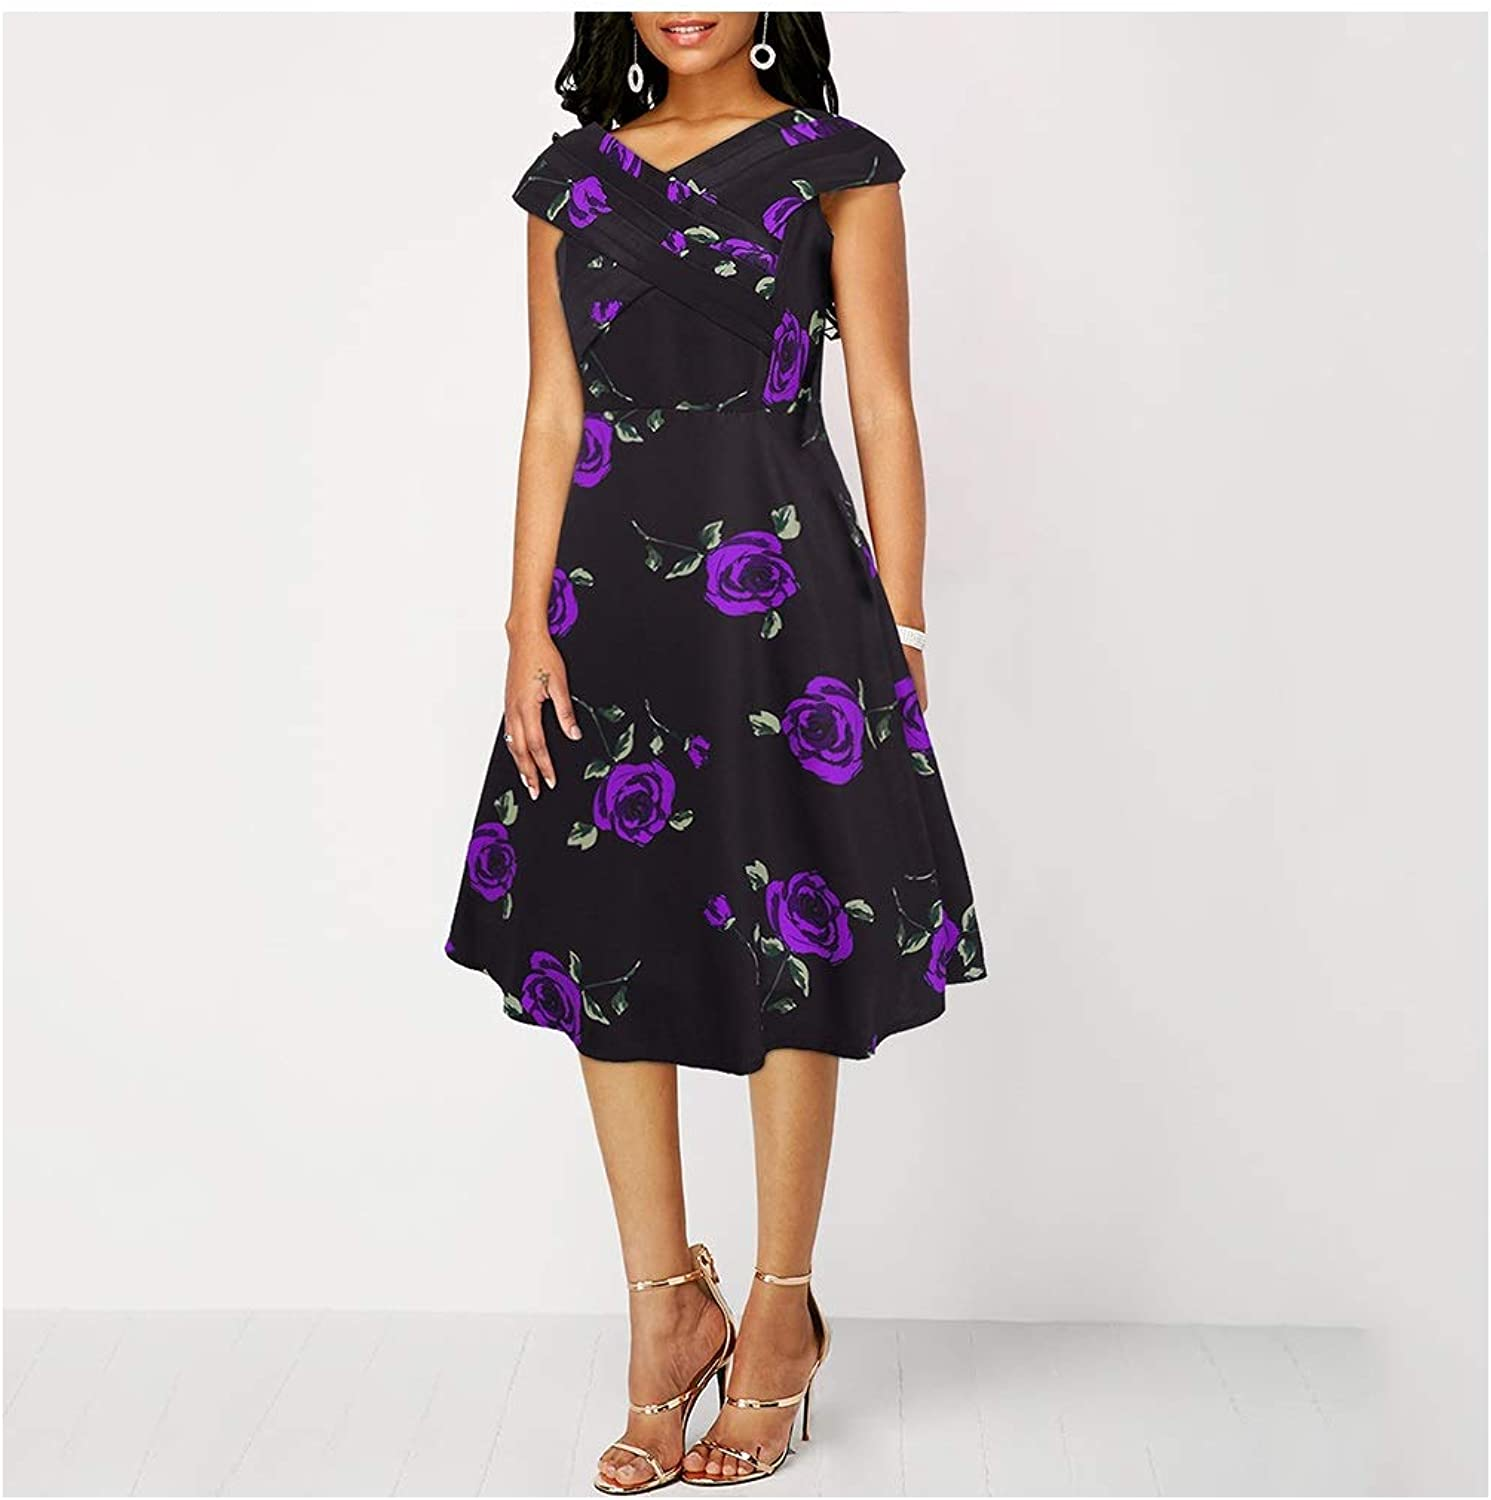 CARRY Dress, Europe and America Comfortable Soft Lady Cocktail Dress Print Vintage Dress Hepburn Wind Skirt (color   color3, Size   M)